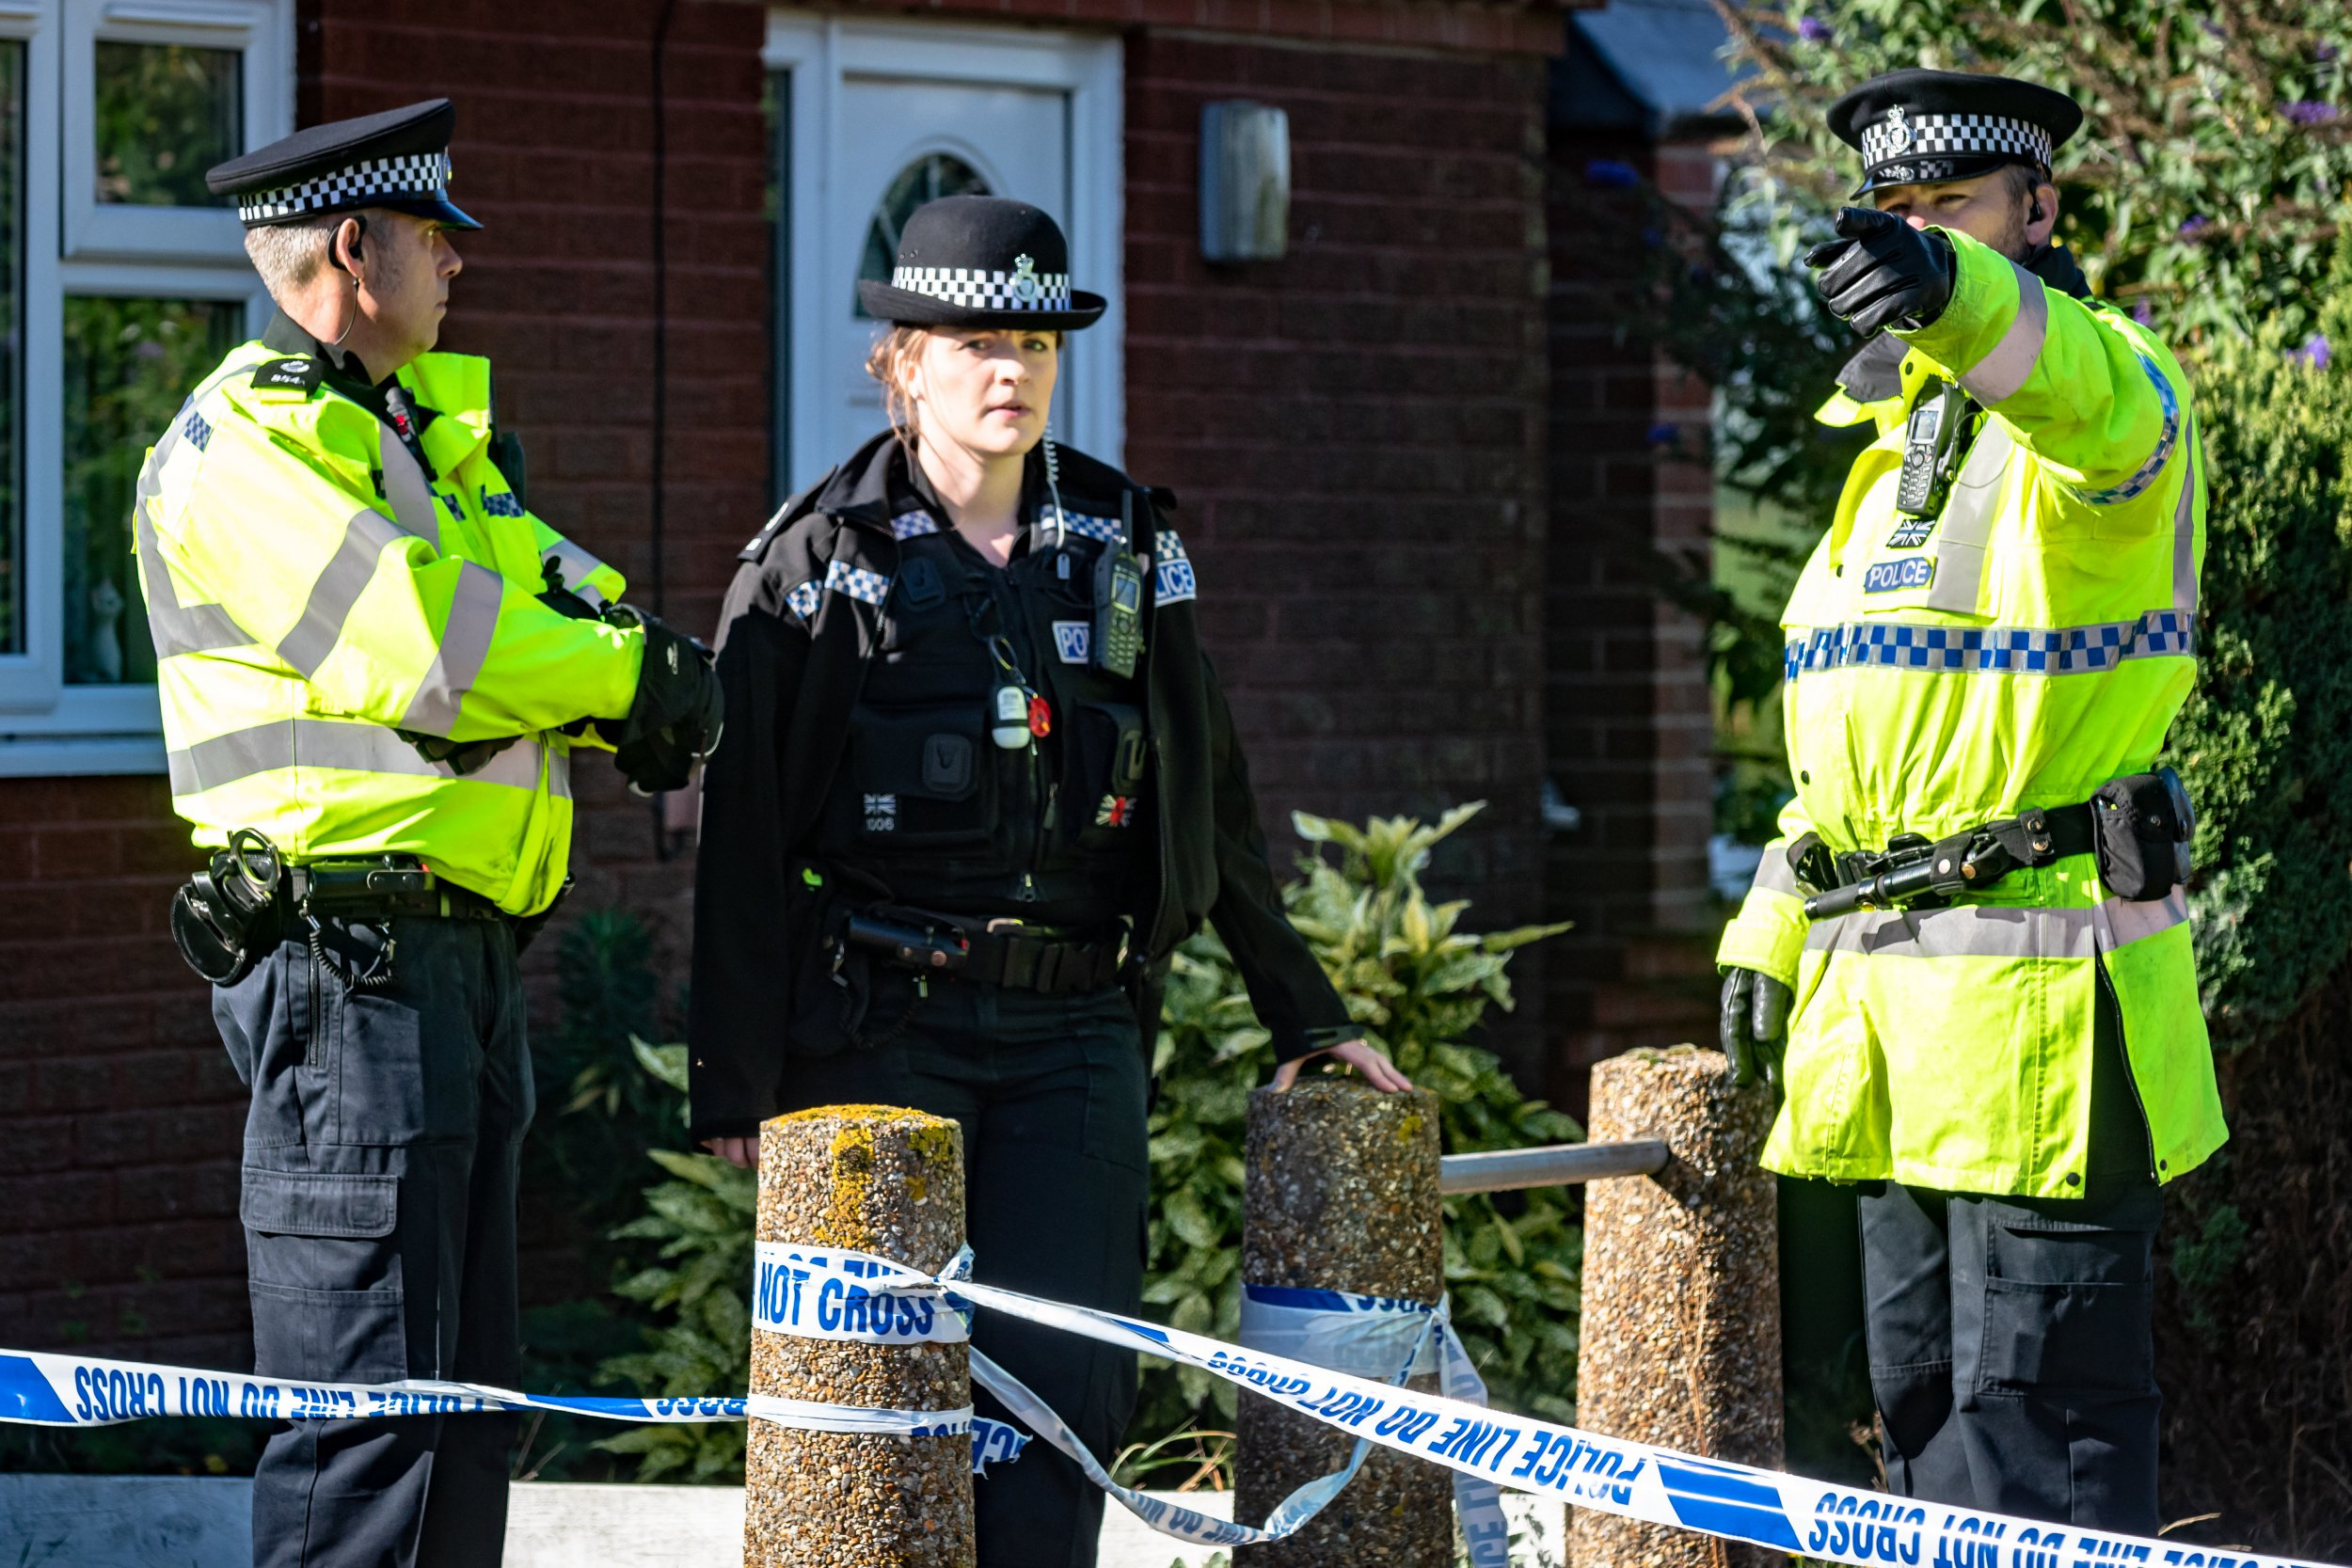 Police officers outside the house of Frances Hubbard, 81, who was found stabbed in her home in Brooke near Norwich, Norfolk, on Sunday morning. September 24 2018 .See Masons story MNSTAB .A man in his 80s is today (mon) being quizzed on suspicion of murder after an elderly woman was found stabbed to death at her home. The victim, named locally as Frances Hubbard, 81, was discovered with fatal stab wounds at her sheltered housing bungalow yesterday morning (sun).She shared her home in the rural village of Brooke near Norwich, Norfolk, with husband Michael, 81. Norfolk Police refused to confirm whether he was the man being held in police custody but confirmed 'the suspect and the victim were known to each other'.